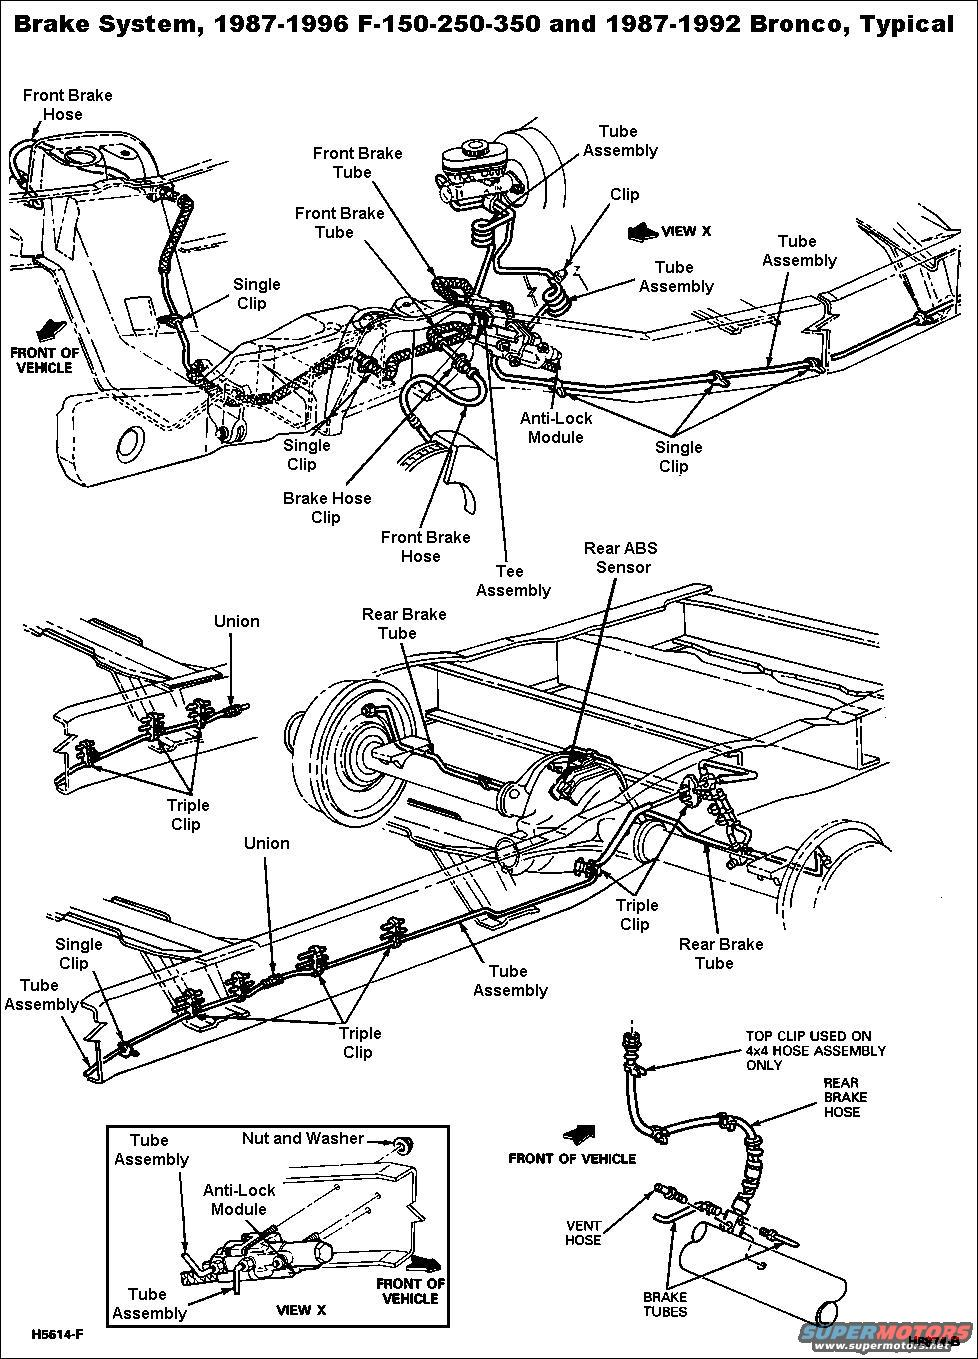 Funky A45251 Regulator Bosch Diagram 1956 Buick Special Wiring ...